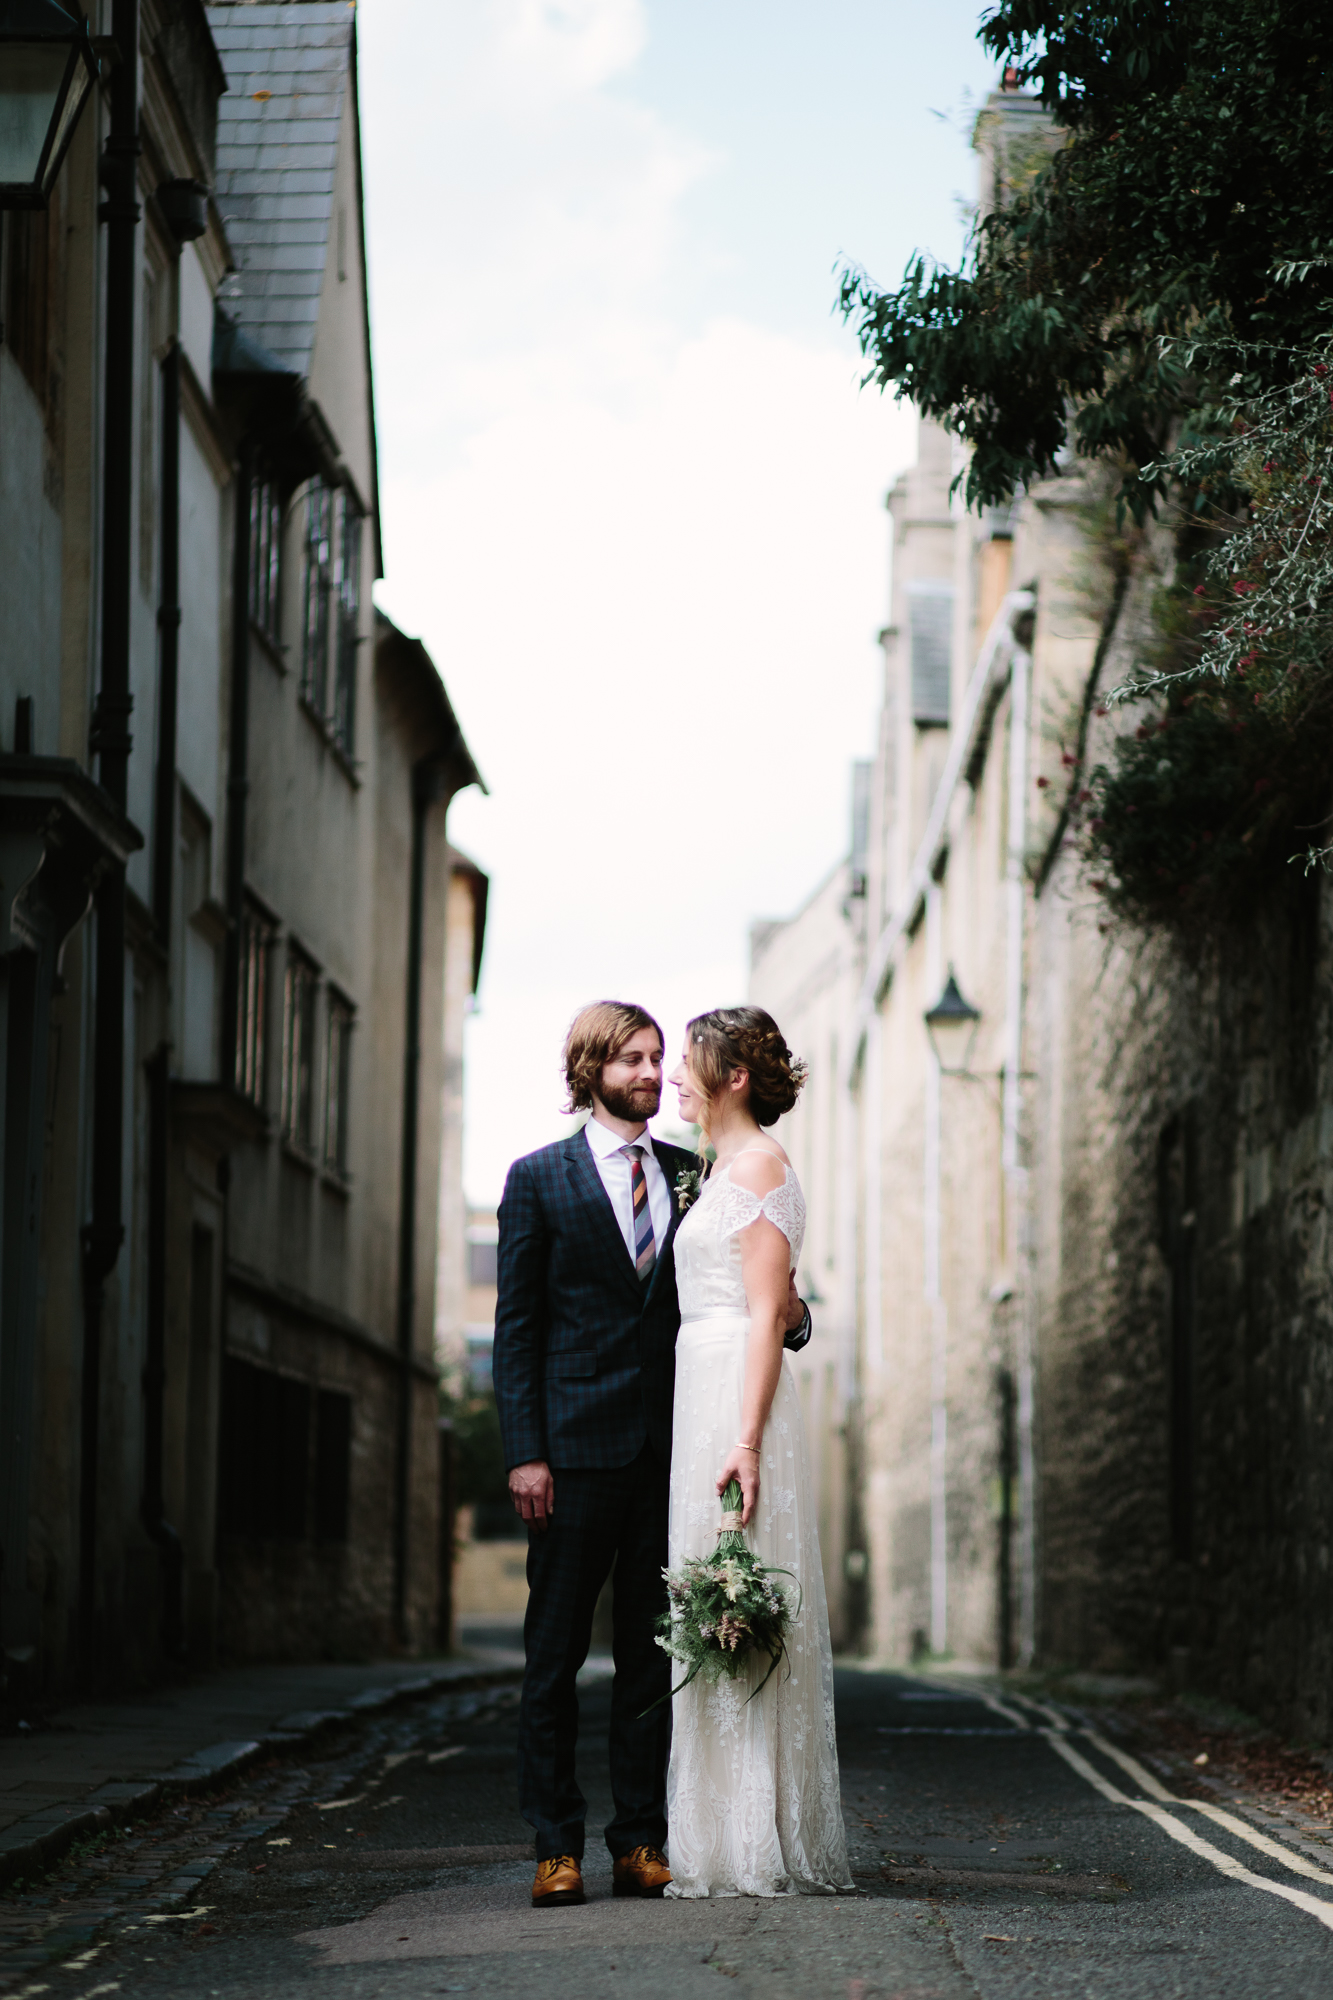 A stunning photo of a bride and groom in the cobbled street of Oxford, before heading off to The Perch Inn